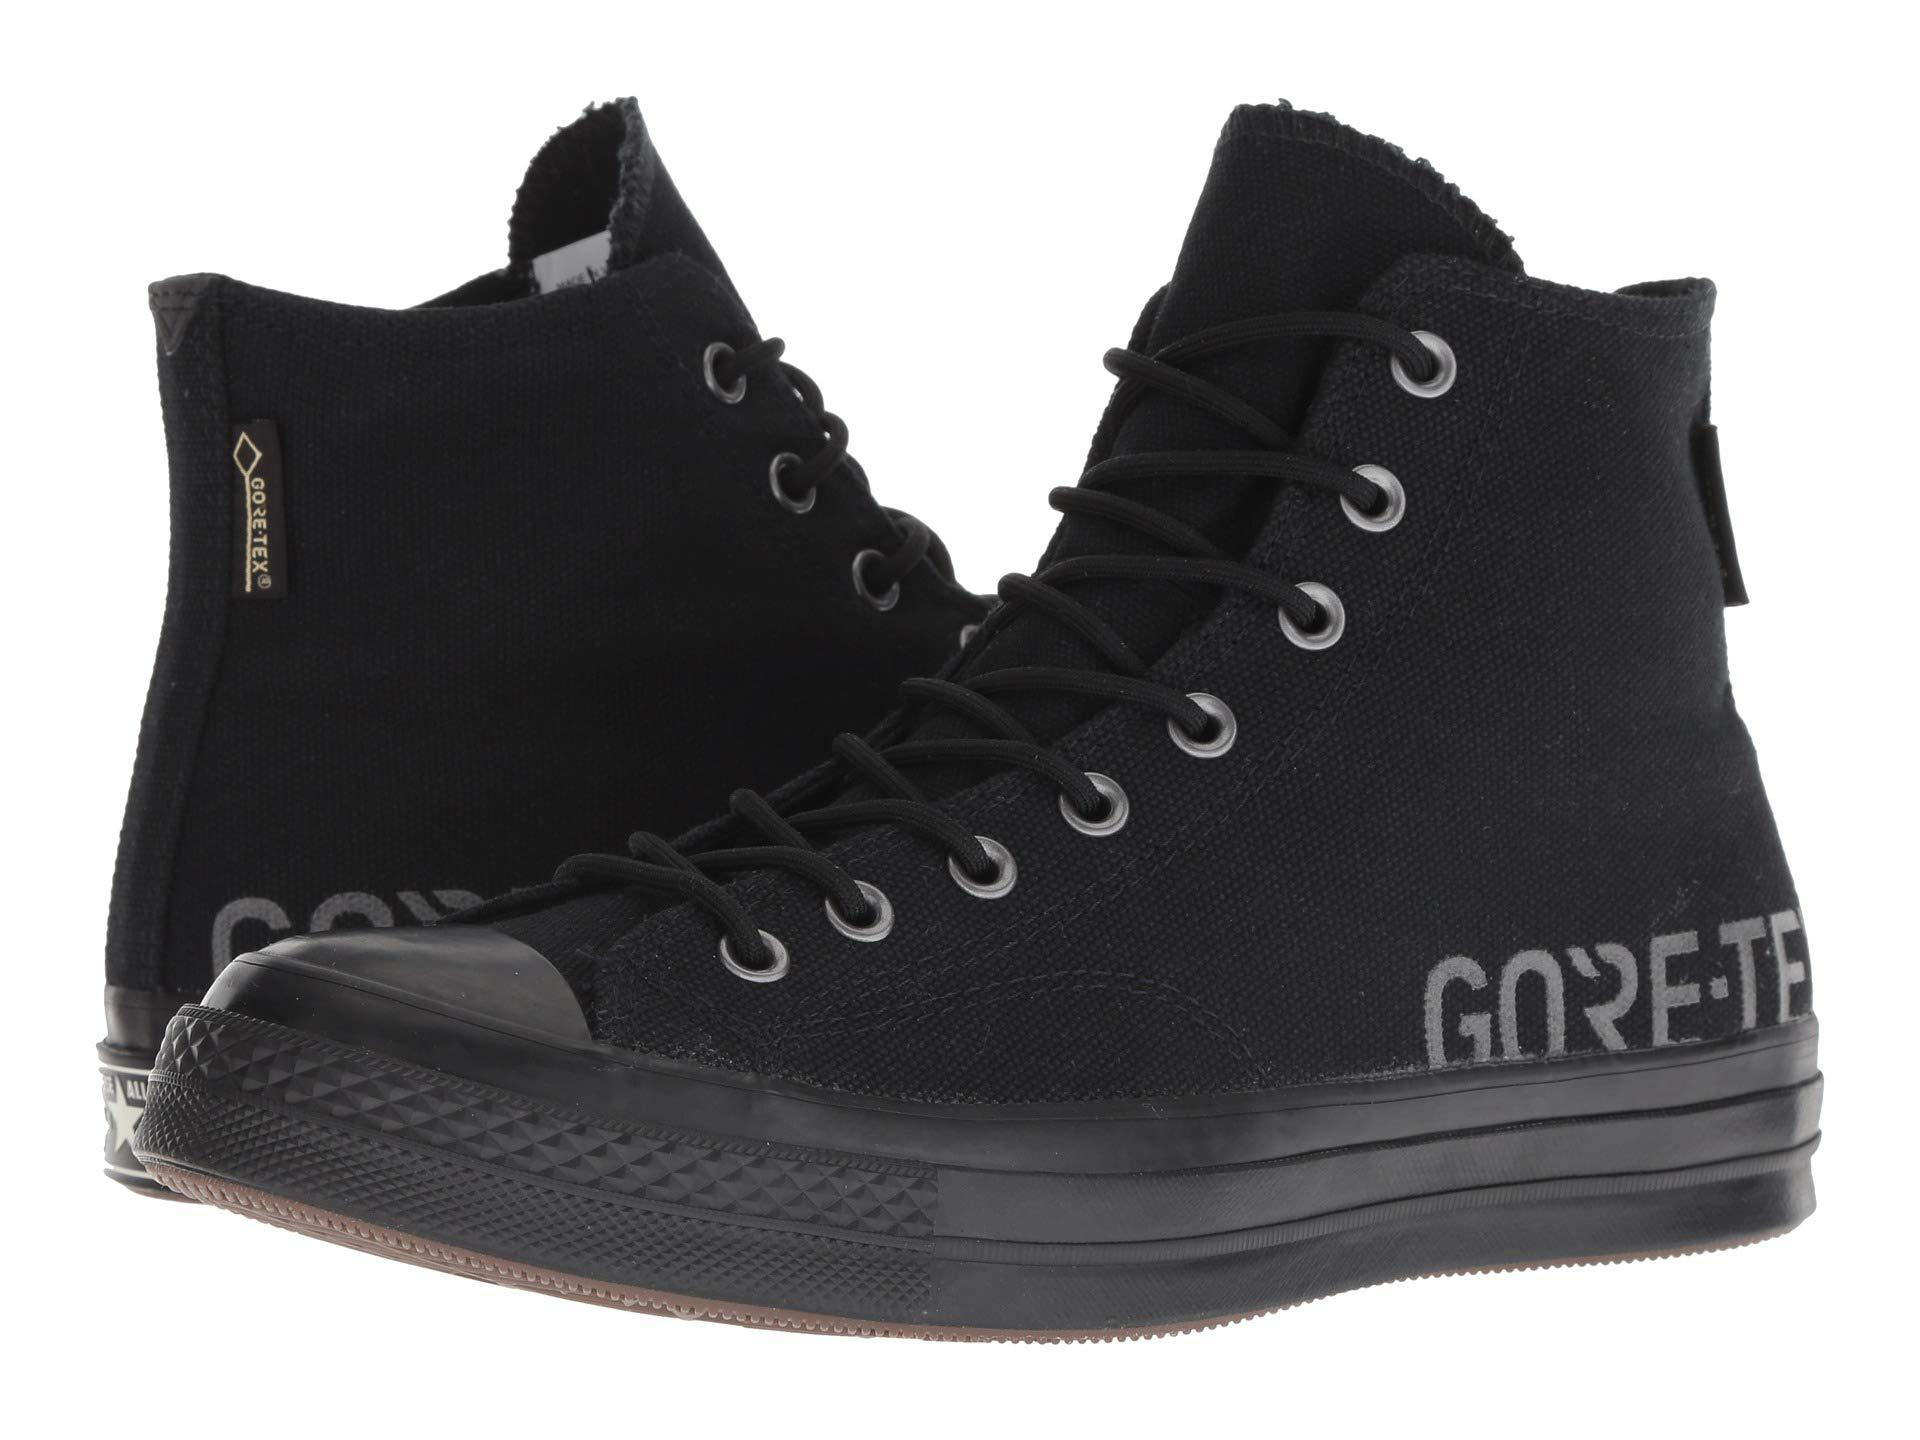 b2fb5e22ce3 Lyst - Converse Chuck 70 - Gore-tex Hi in Black - Save 25%